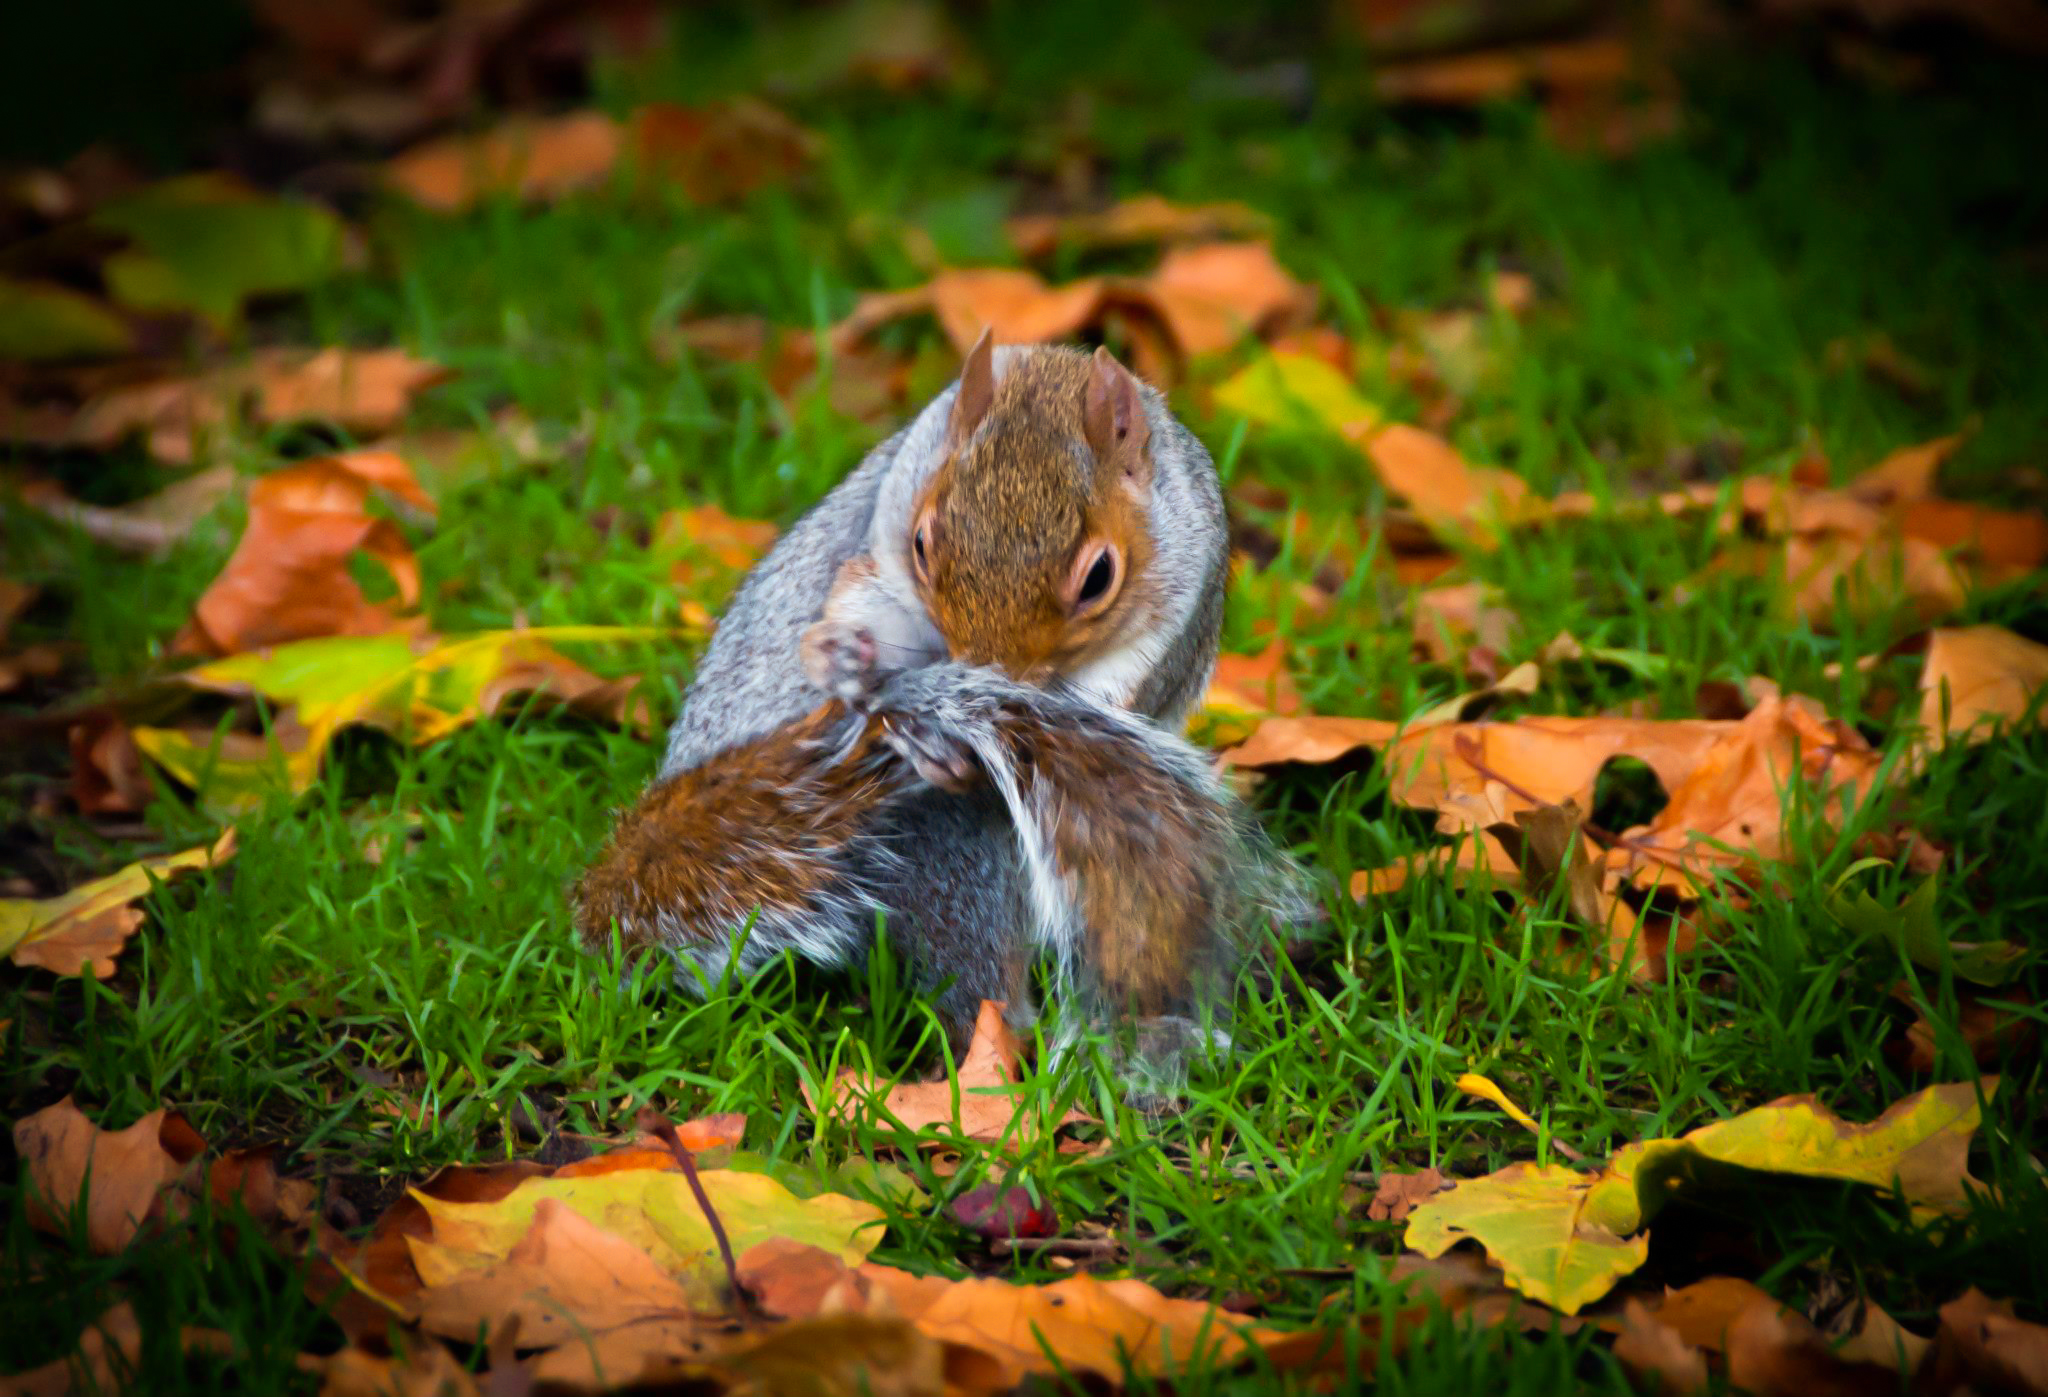 London England Iphone Wallpaper Hyde Park Squirrel 3 Full Hd Wallpaper And Background